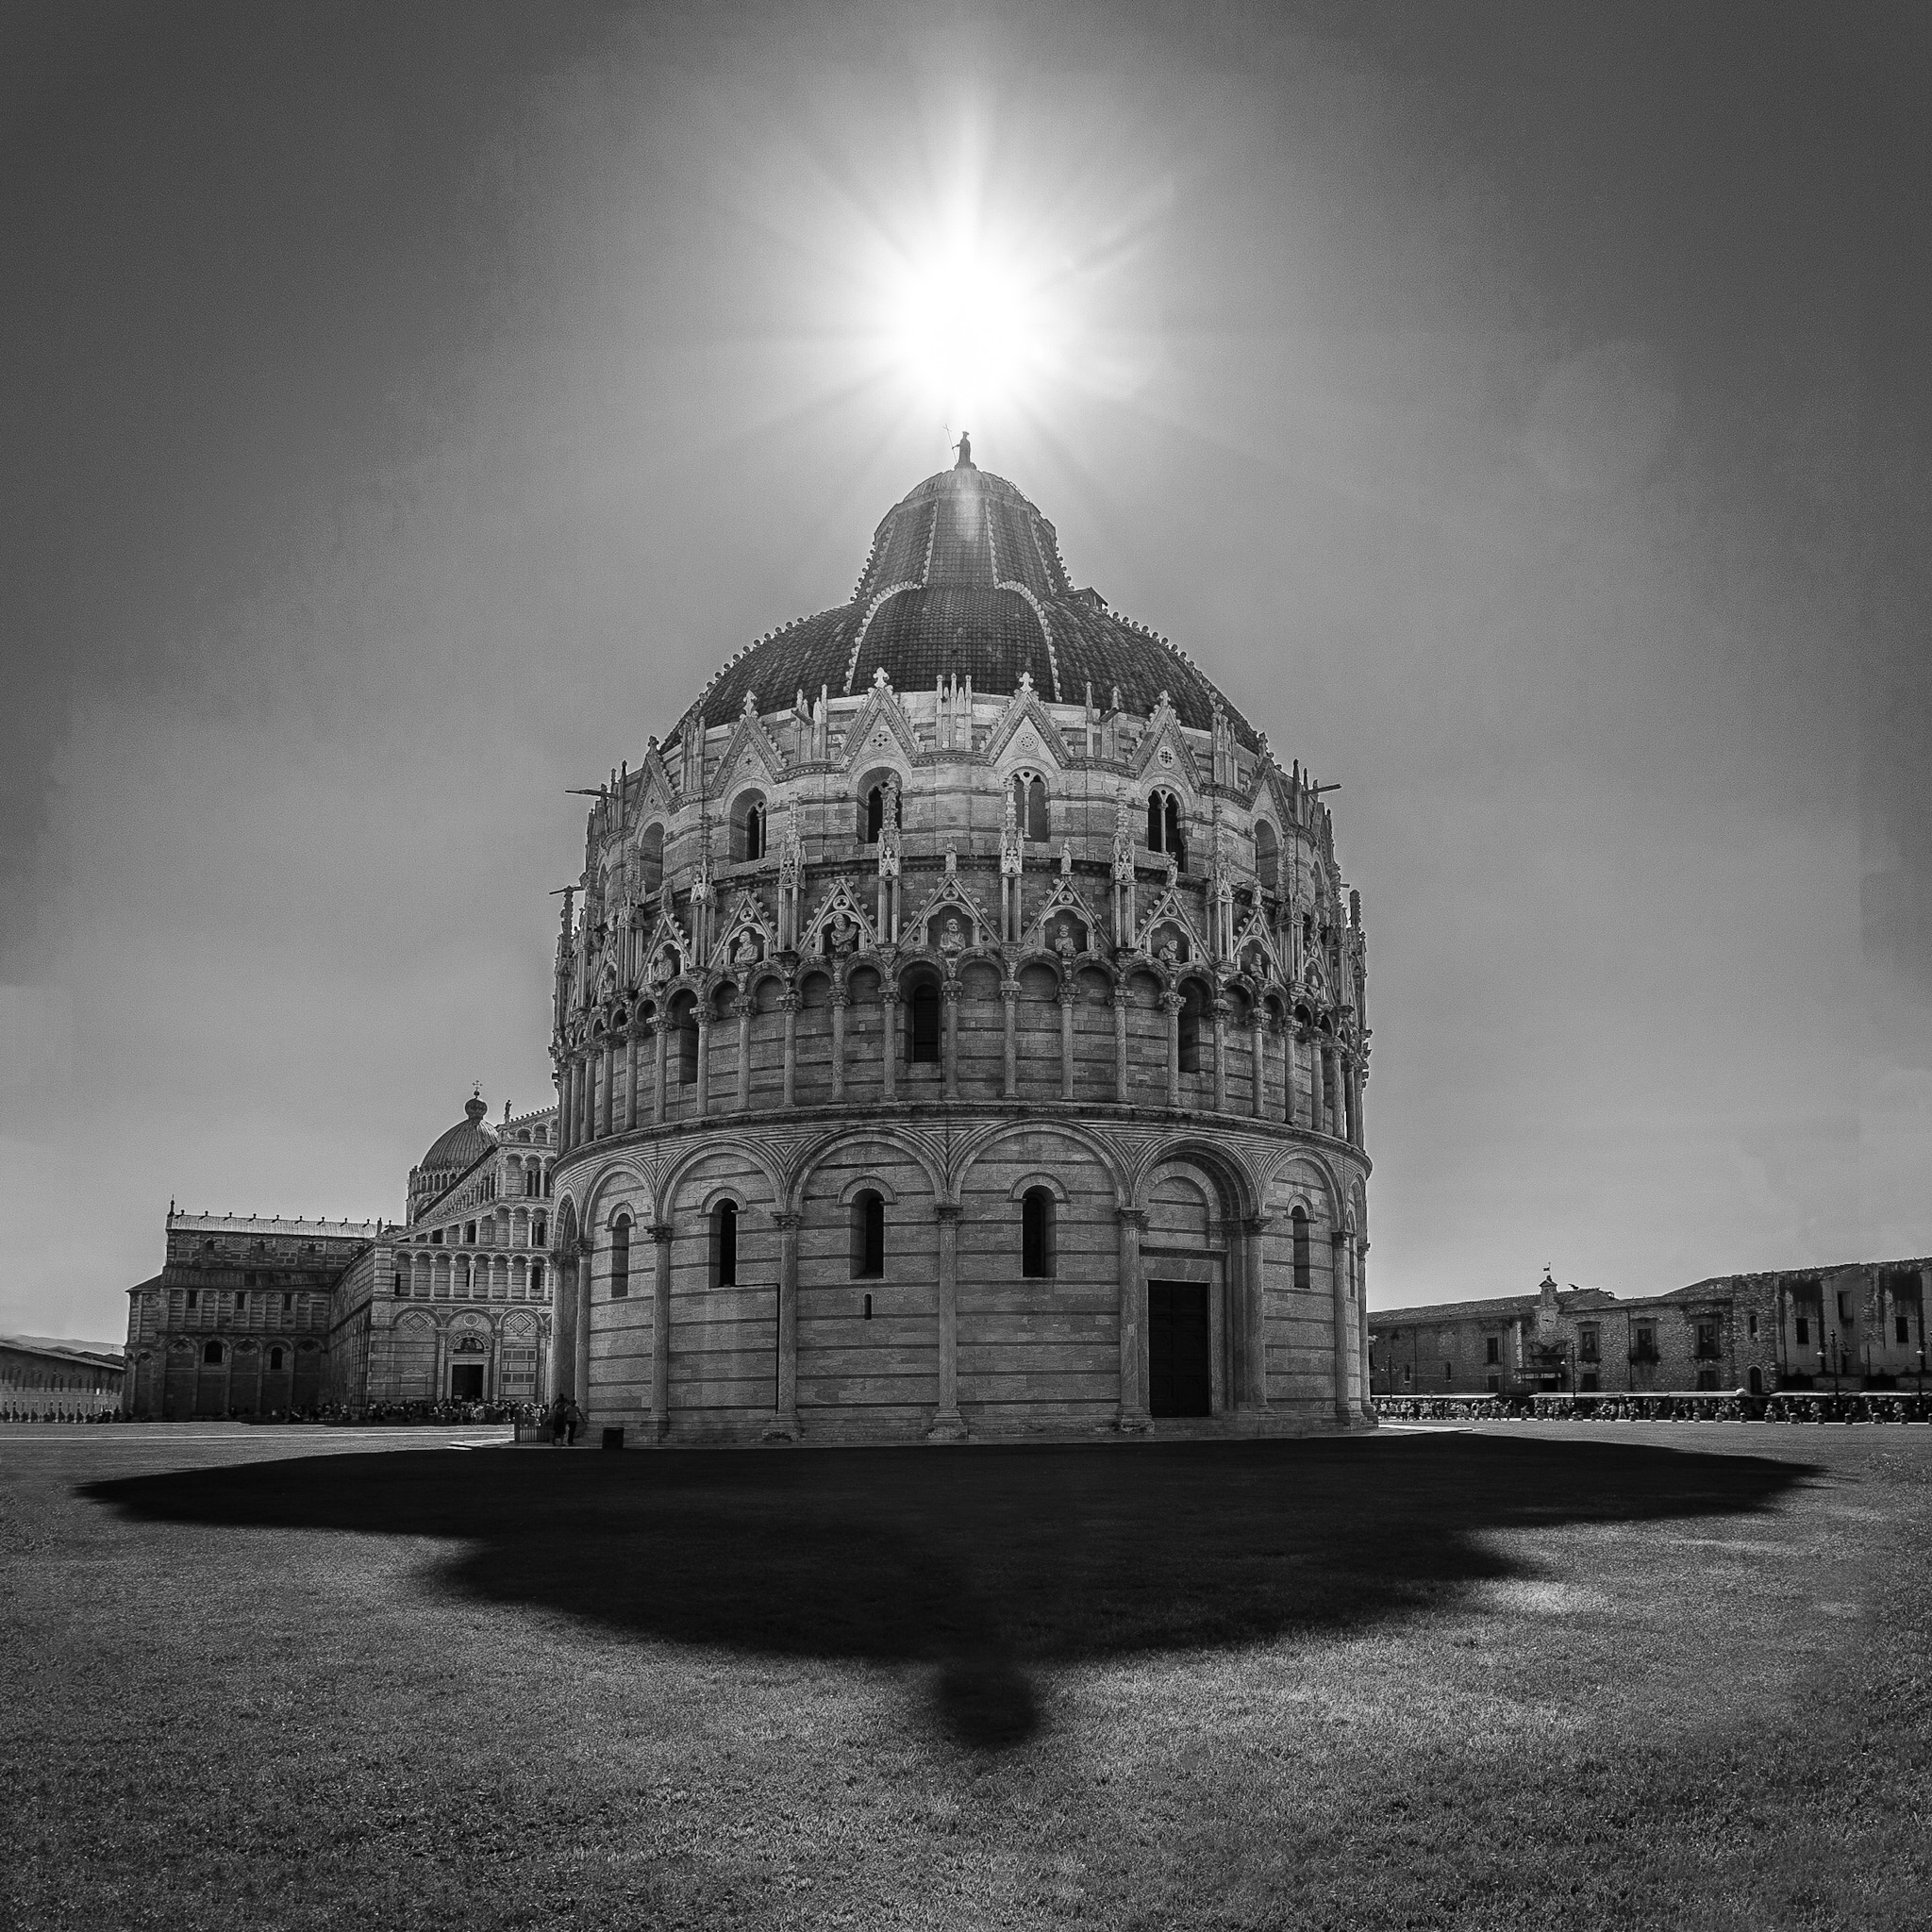 Black and white picture of the Battistero di San Giovanni In Pisa